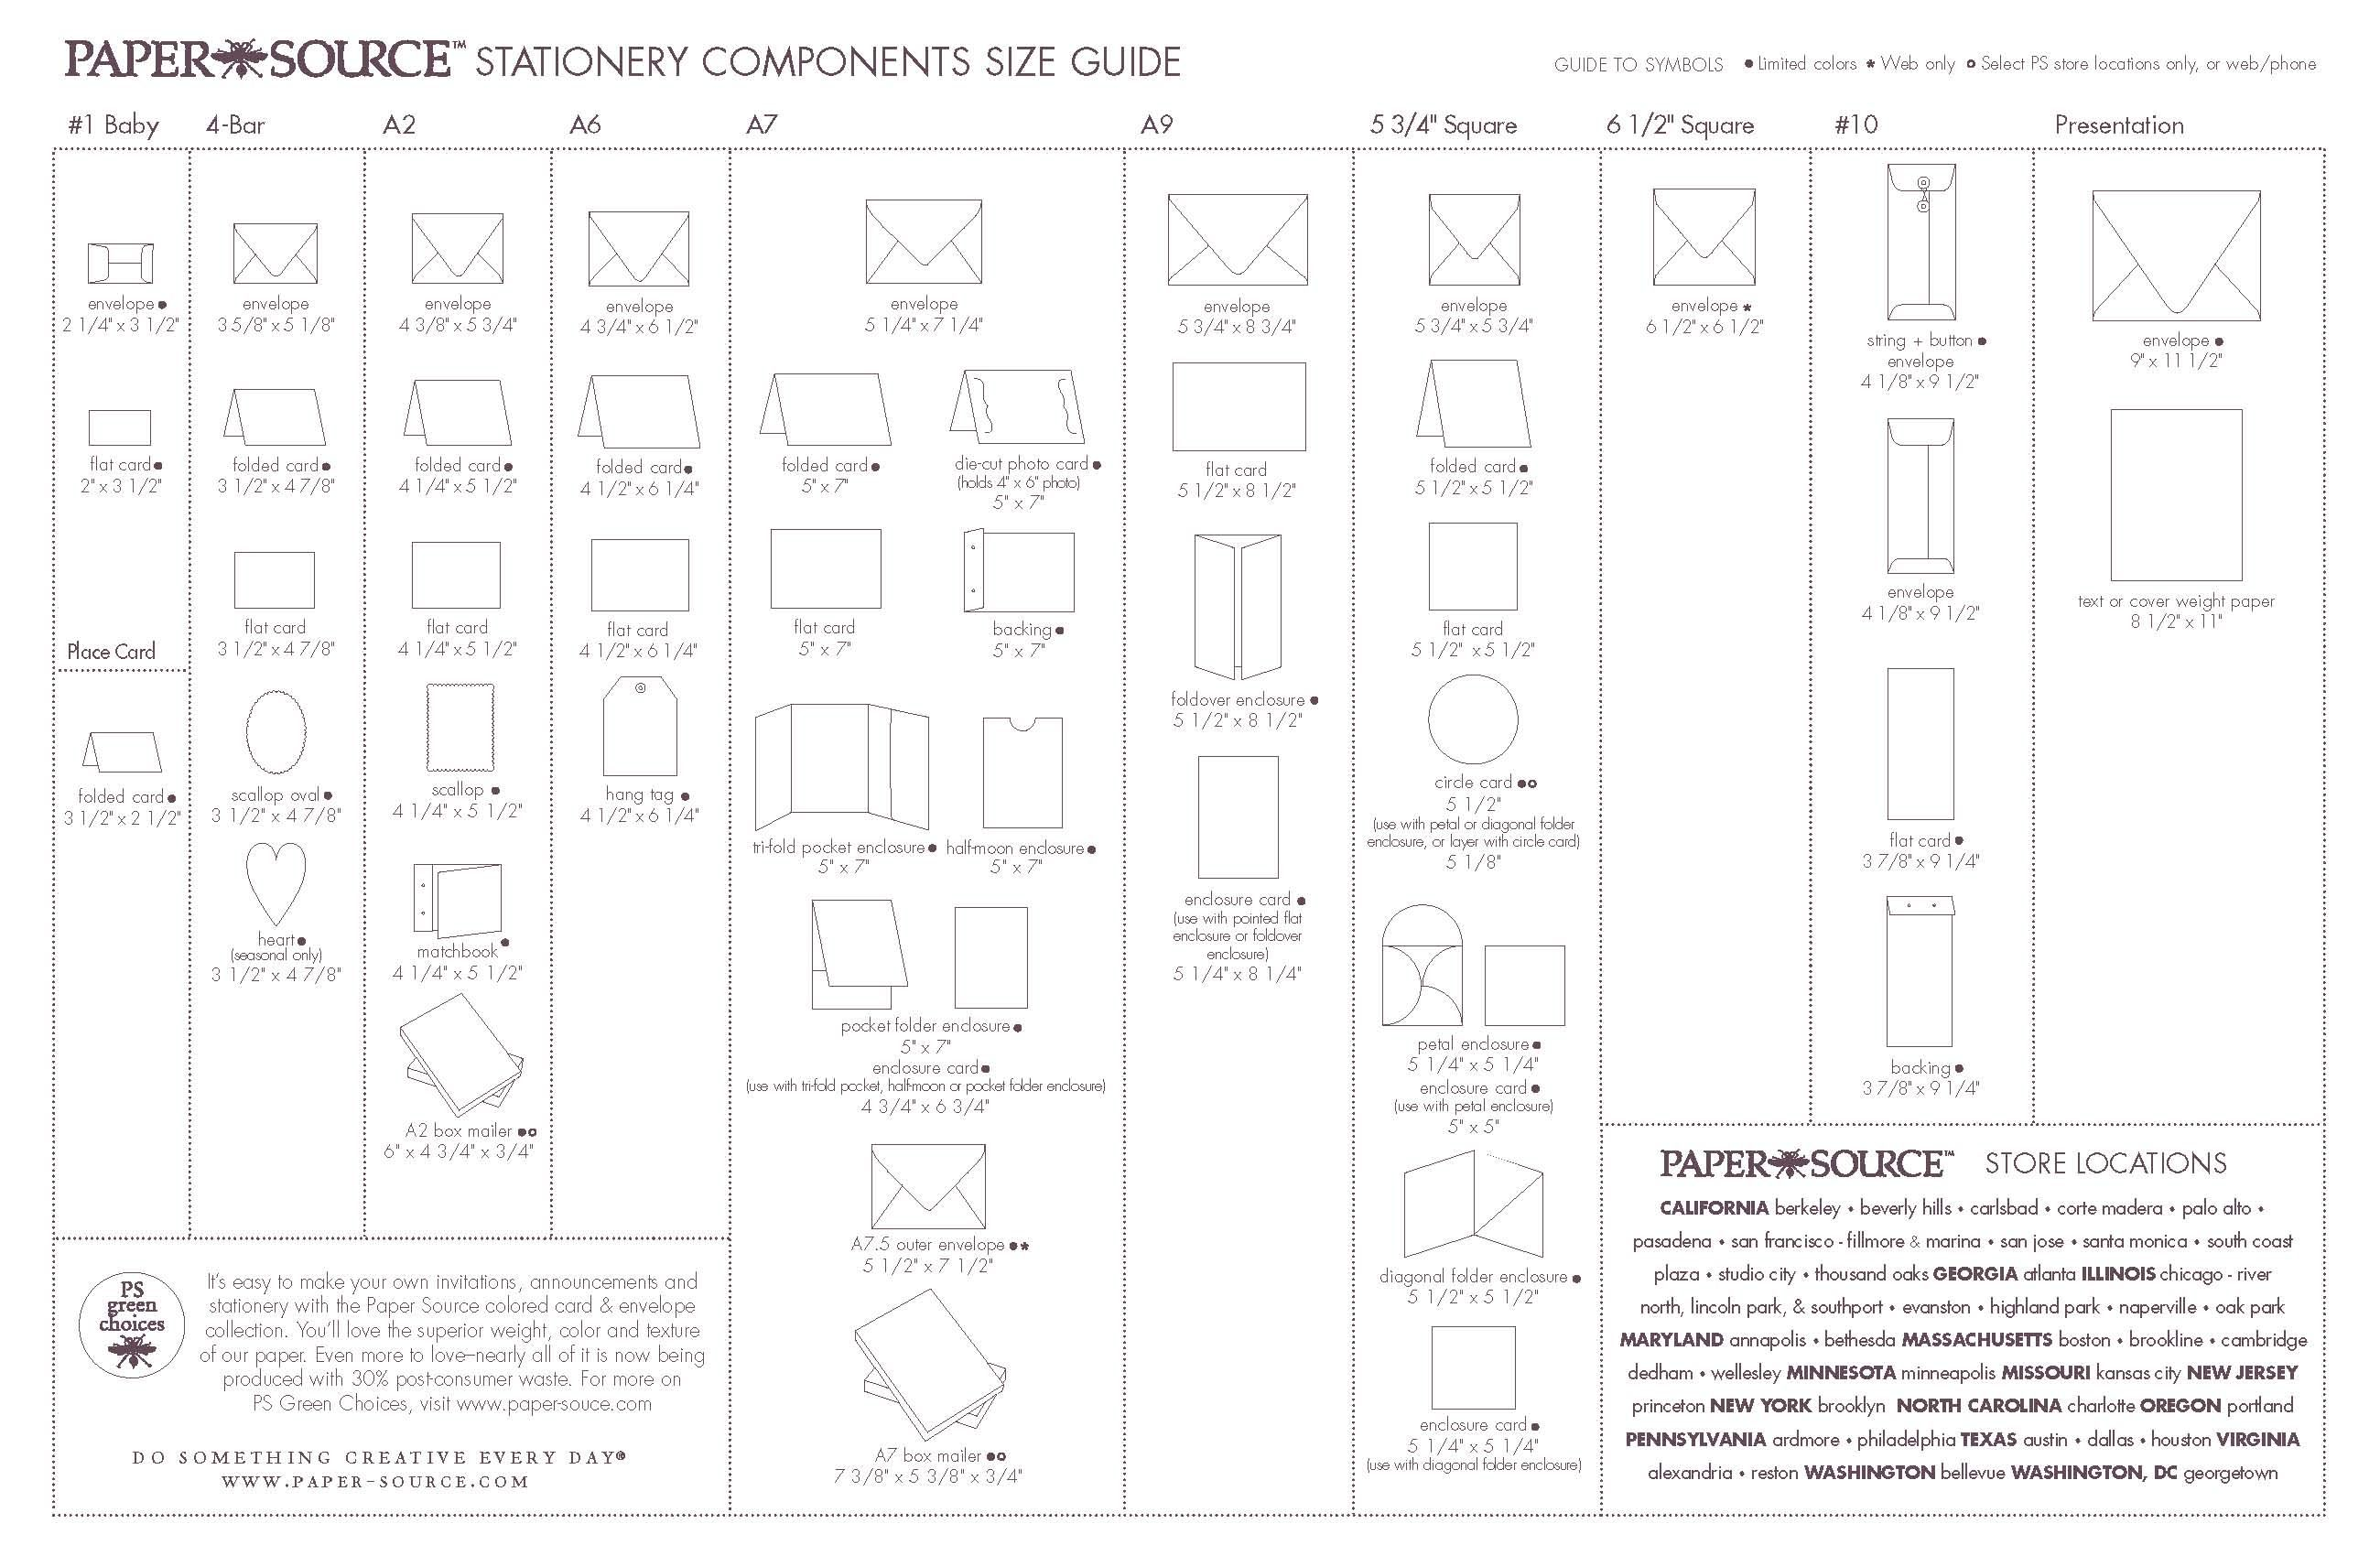 Envelope card size chart papersource also stationery components guide rh pinterest